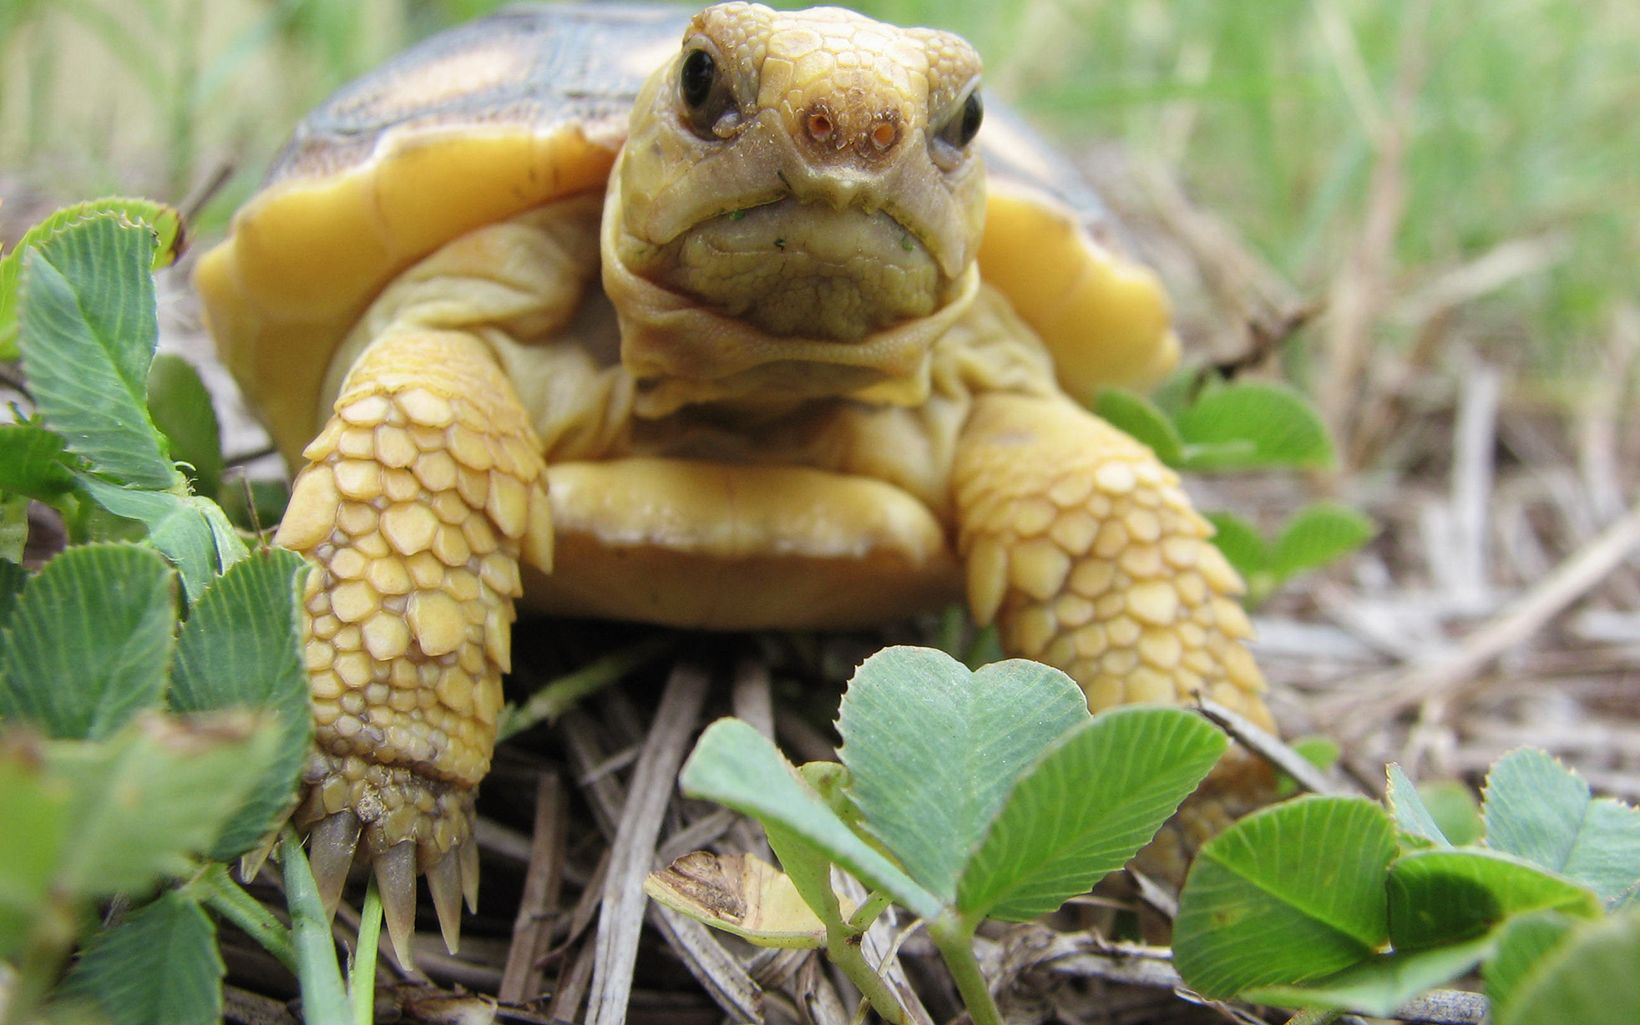 Springtime brings tiny tortoises to the Willie Farrell Brown Preserve in Mississippi.